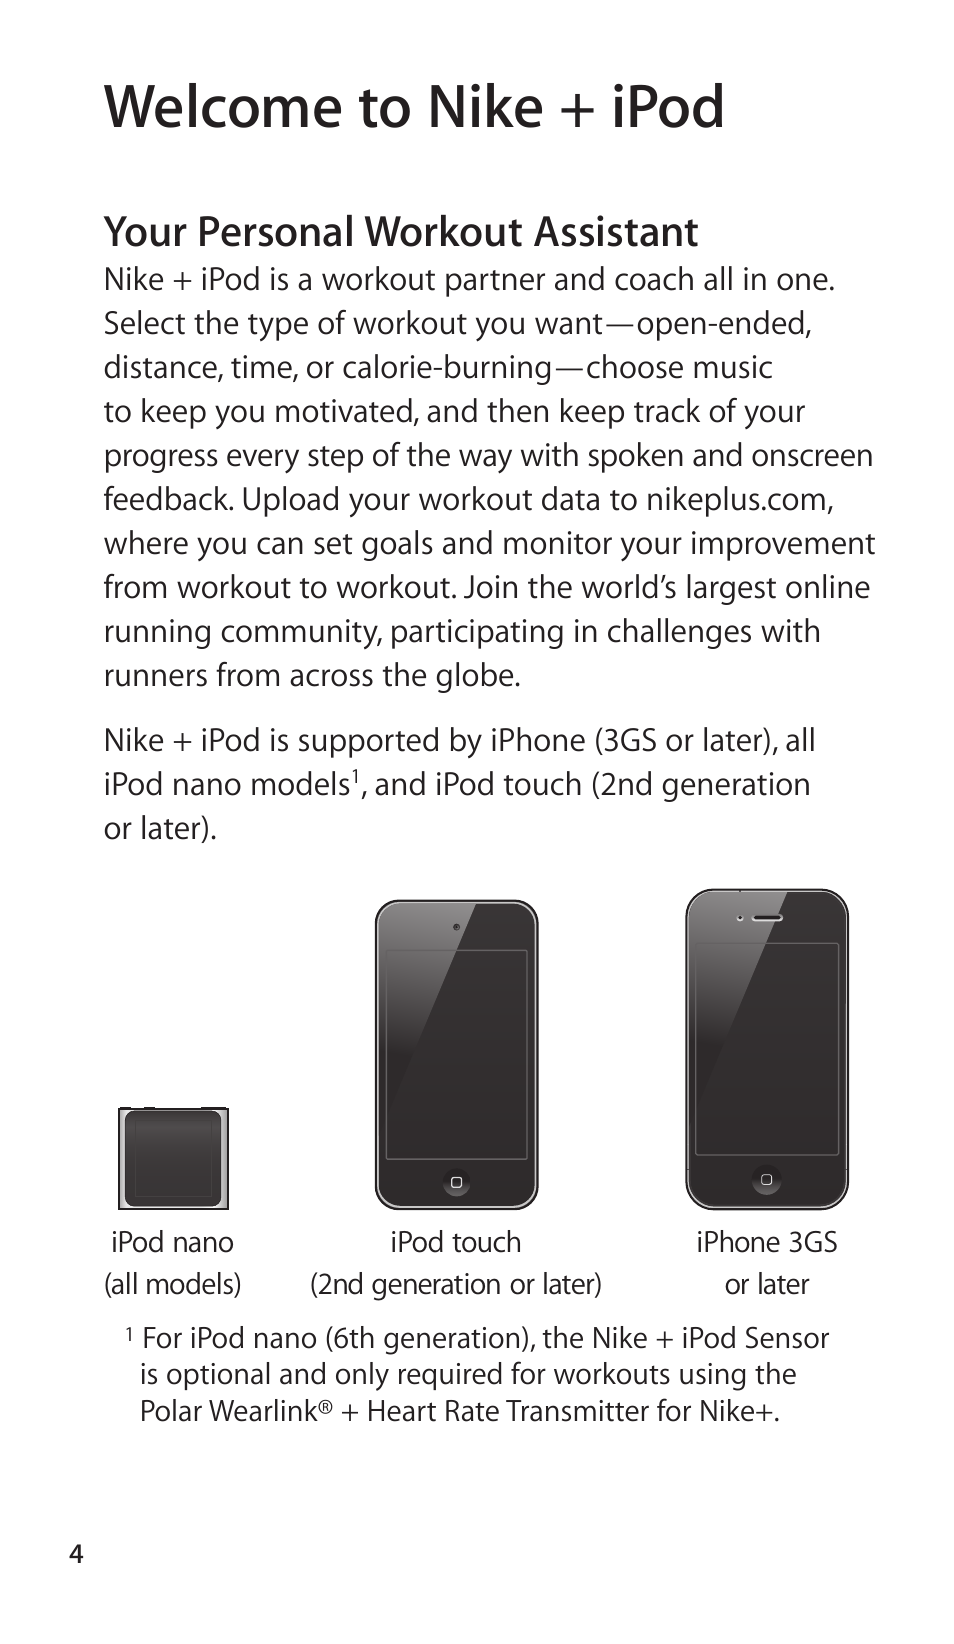 nike plus and ipod user guide